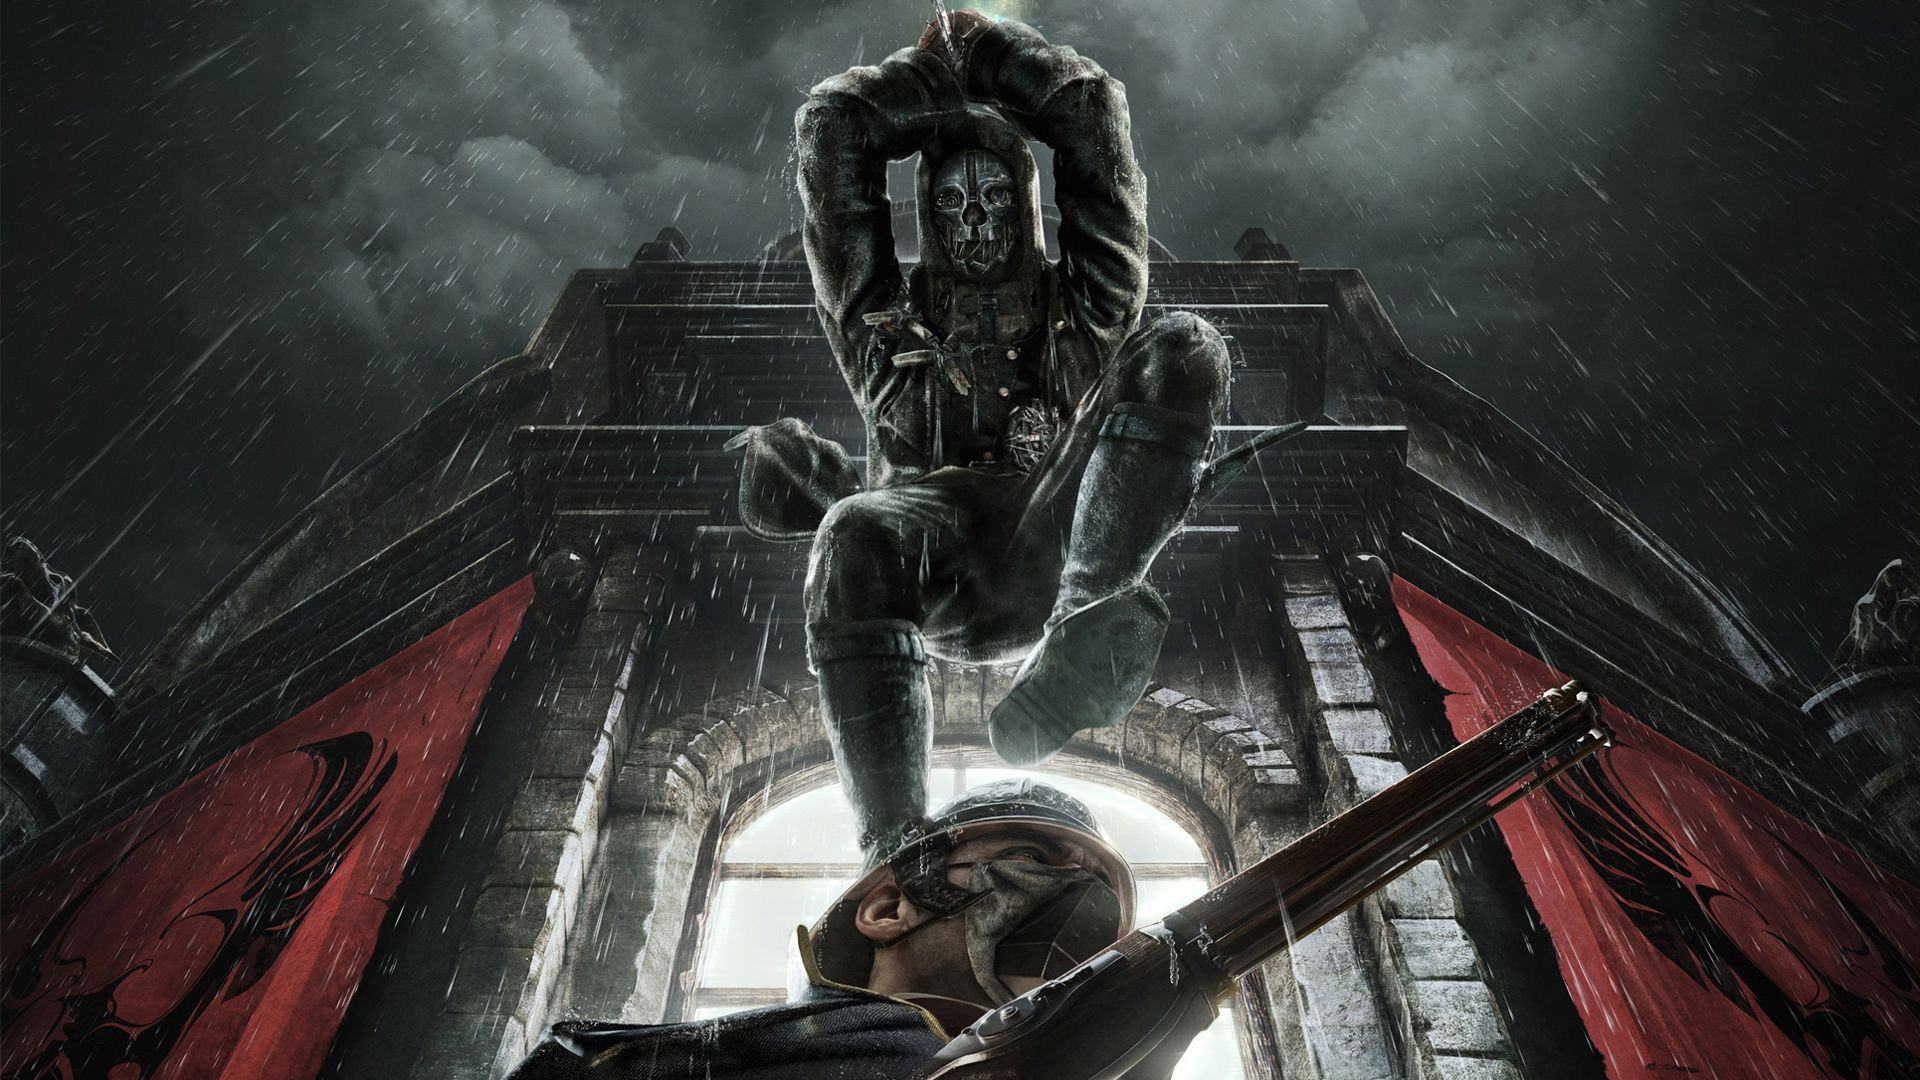 Dishonored Corvo Mask Wallpaper Game Concept ArtBest